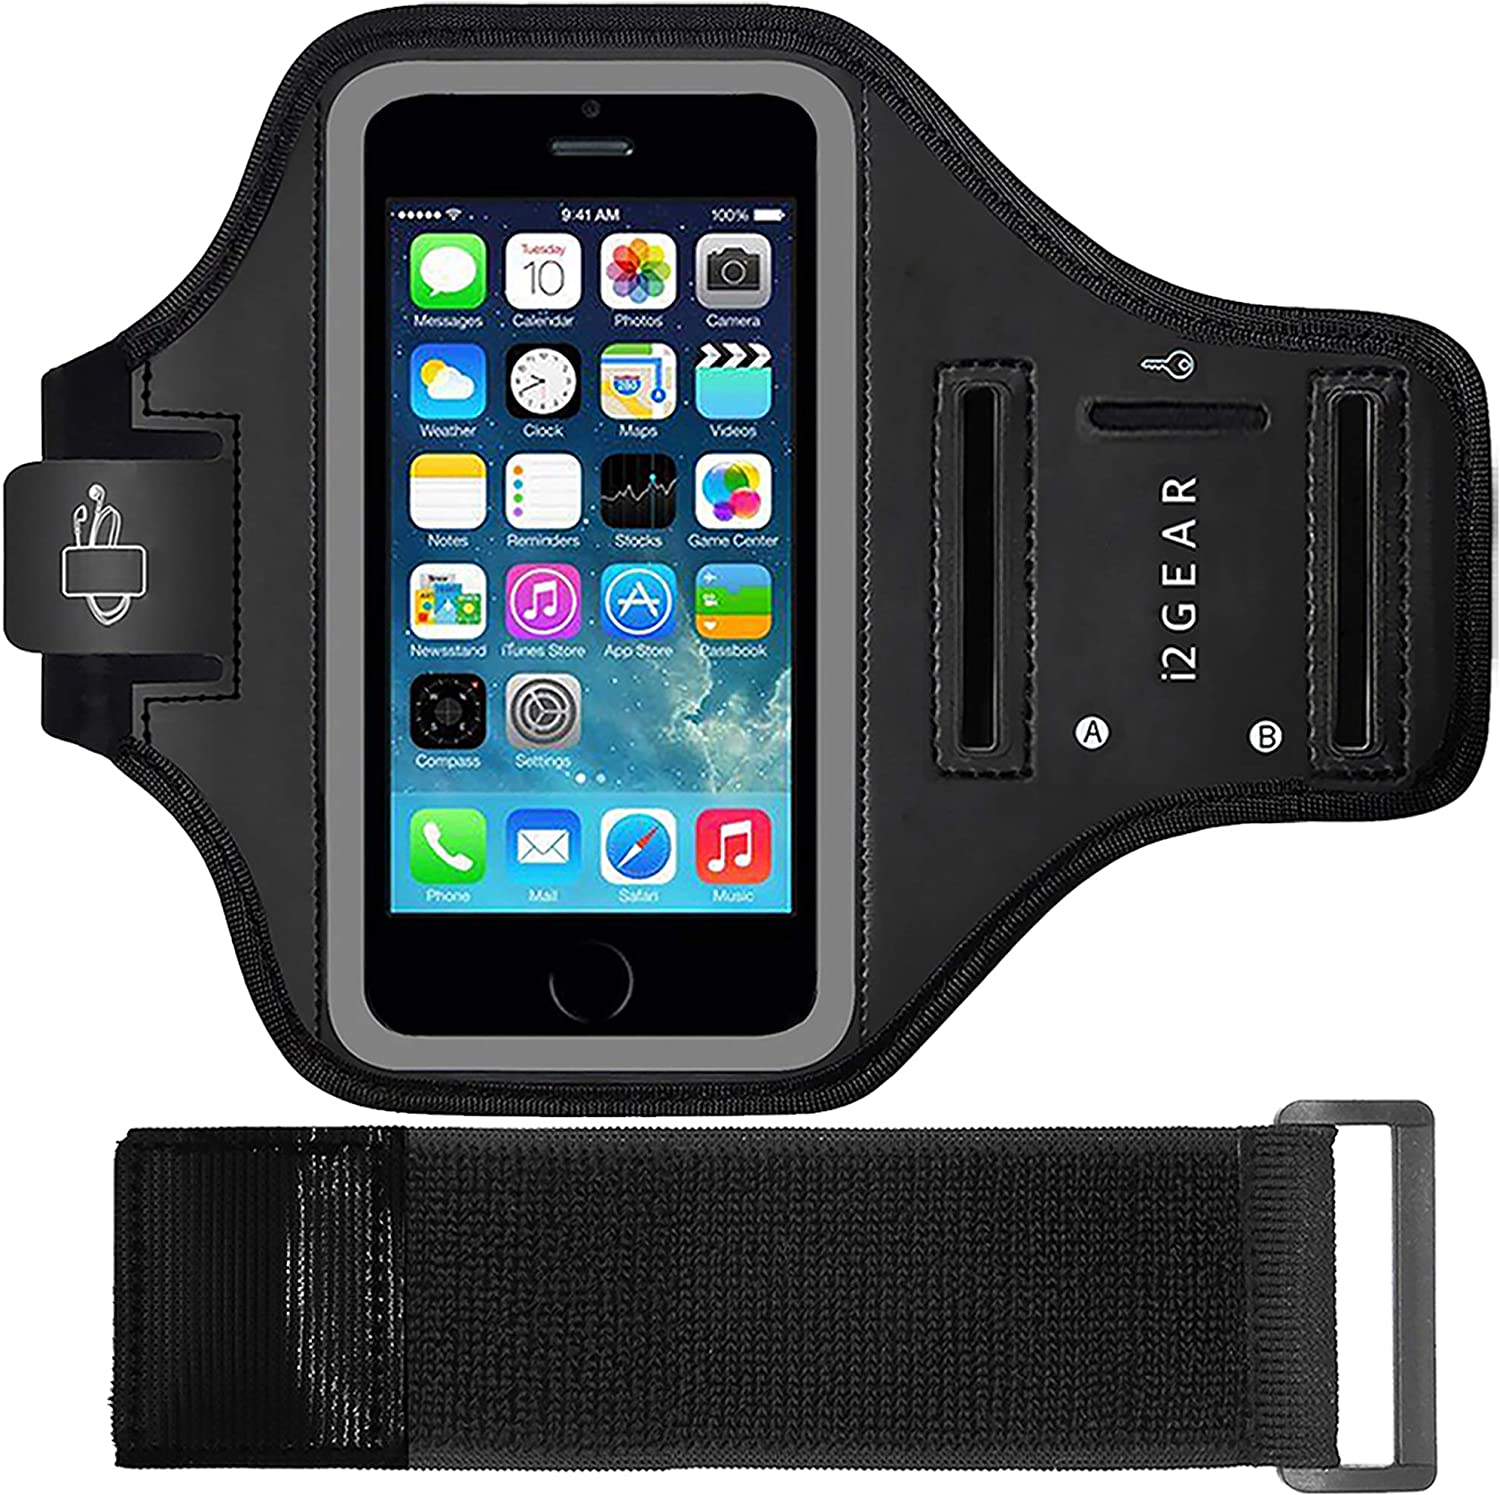 i2 Gear Armband for iPhone 5, 5s, 5C, SE & iPod Touch 7th, 6th, 5th Generation with Key Holder & Elastic Strap Extender